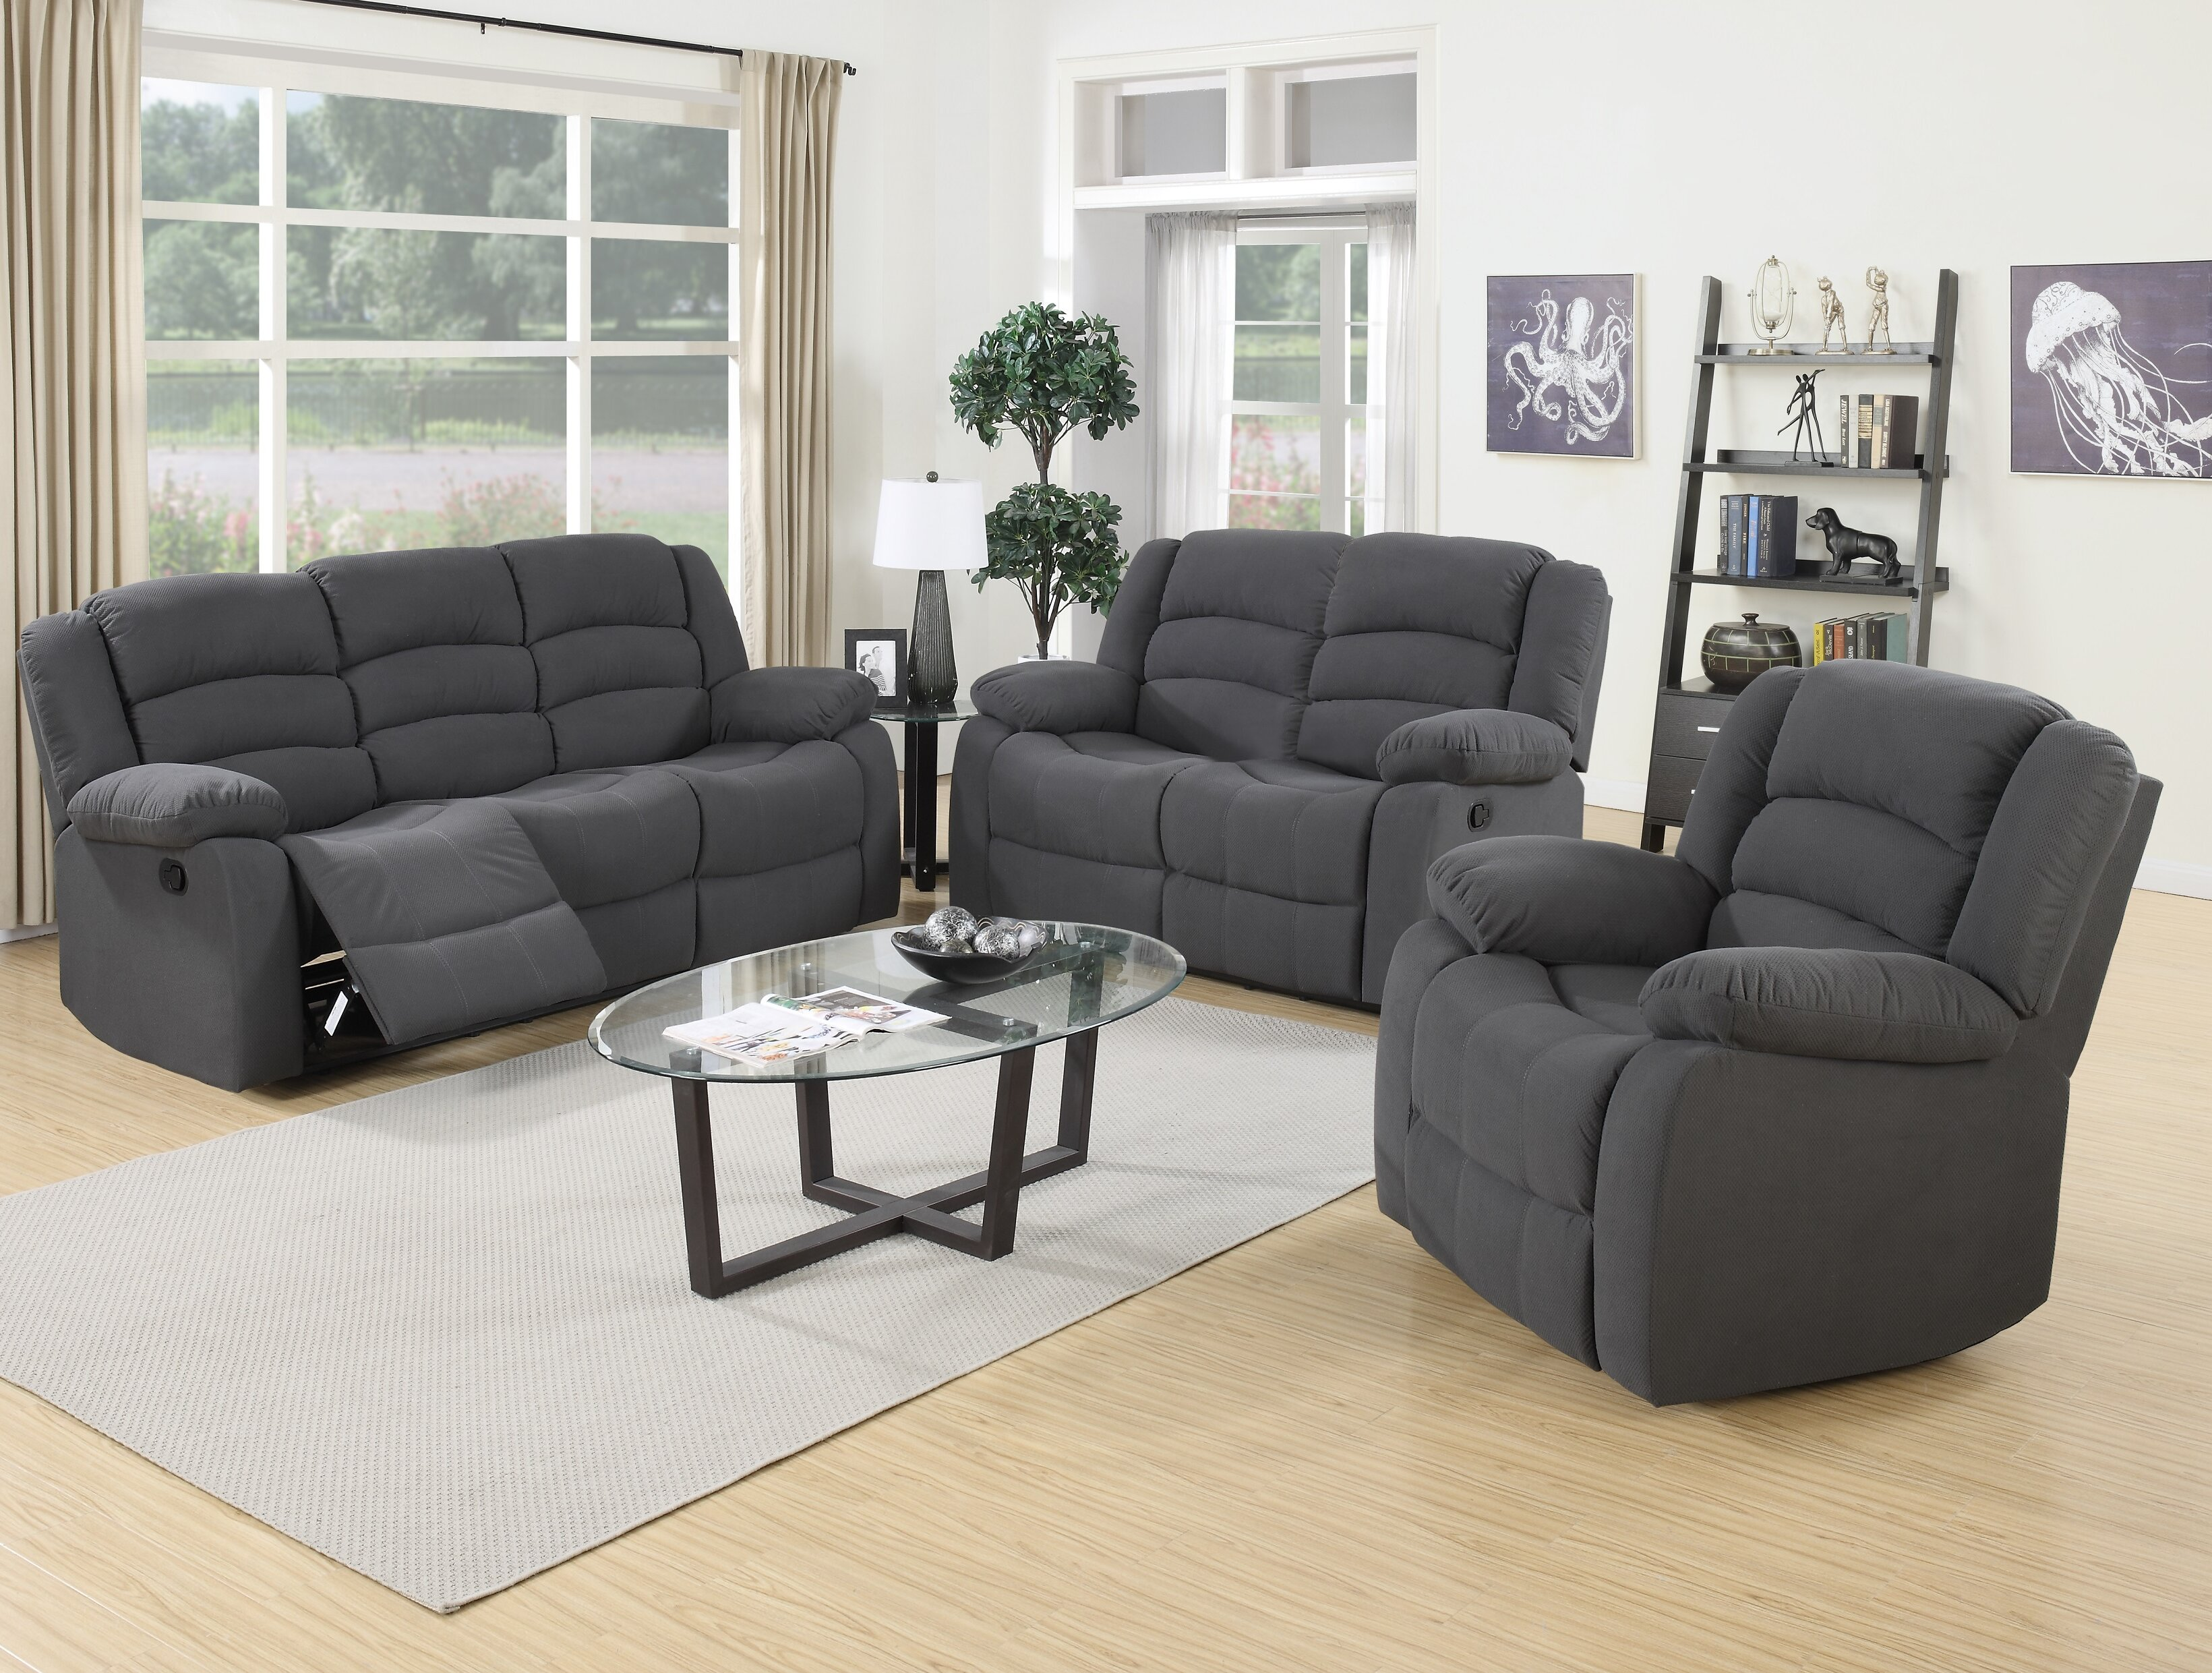 https://secure.img1-fg.wfcdn.com/im/81741681/compr-r85/3931/39315534/mayflower-3-piece-living-room-set.jpg